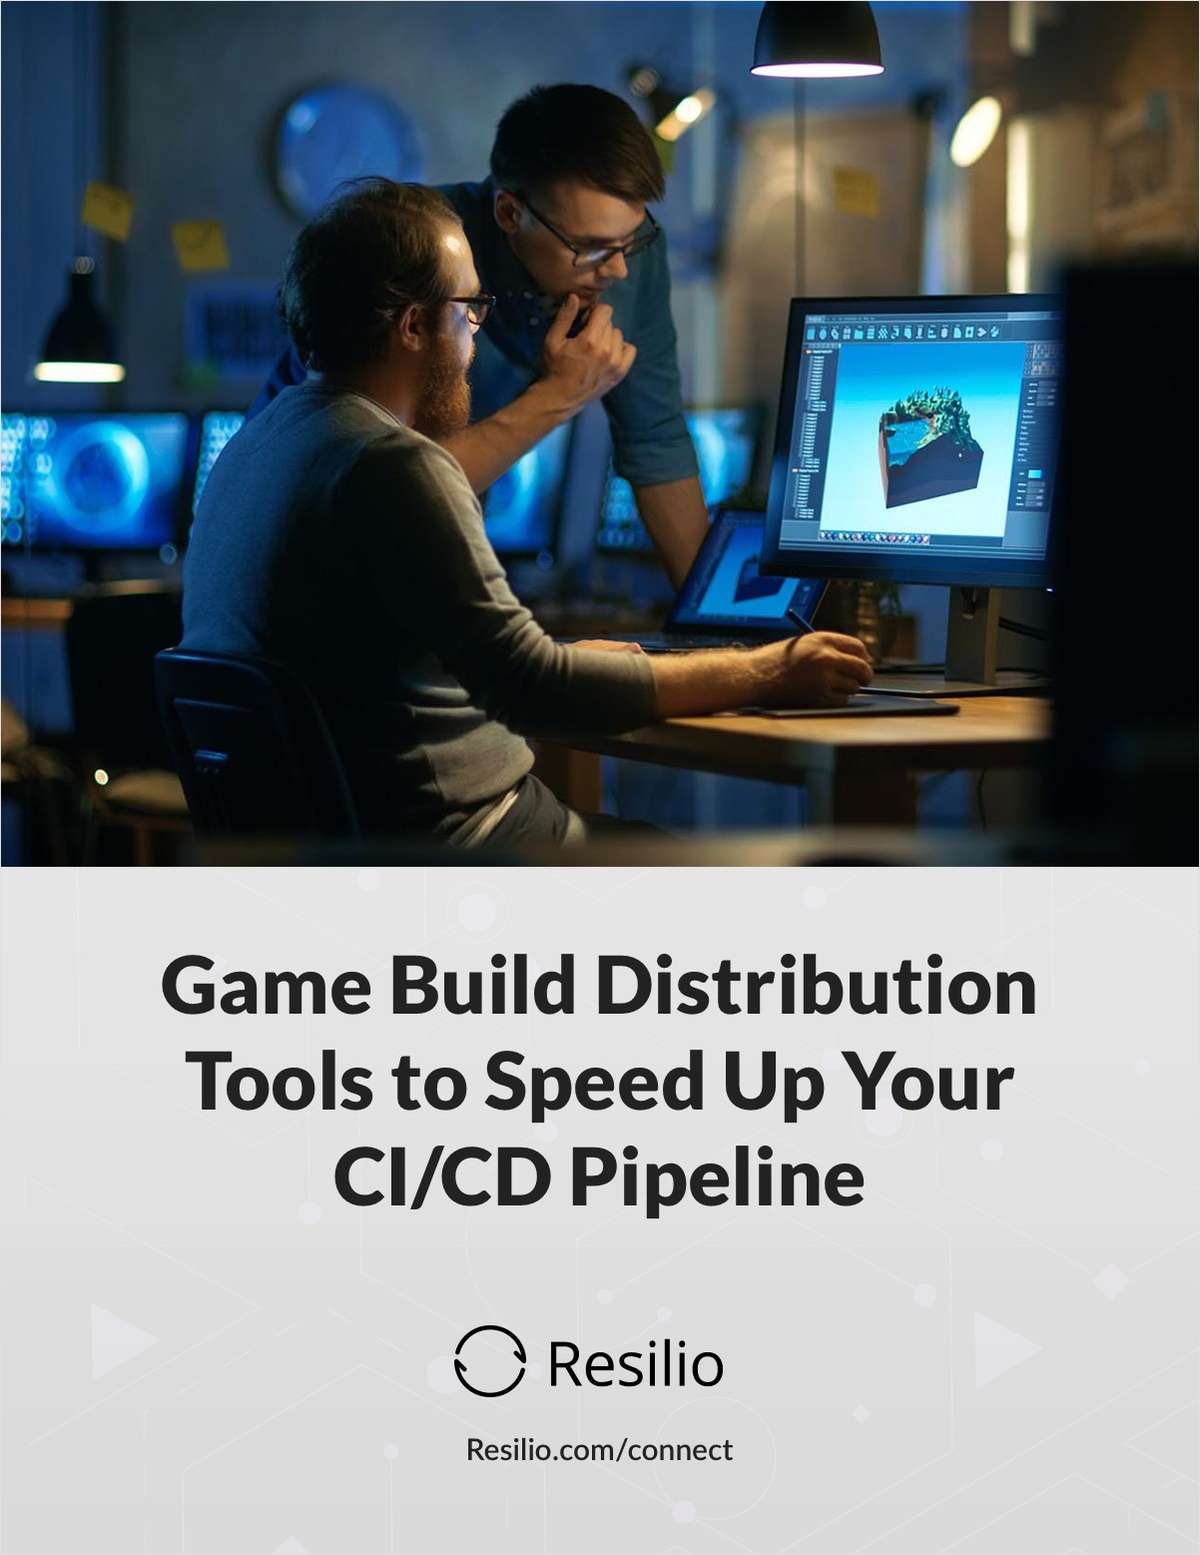 Game Build Distribution Tools to Speed Up Development